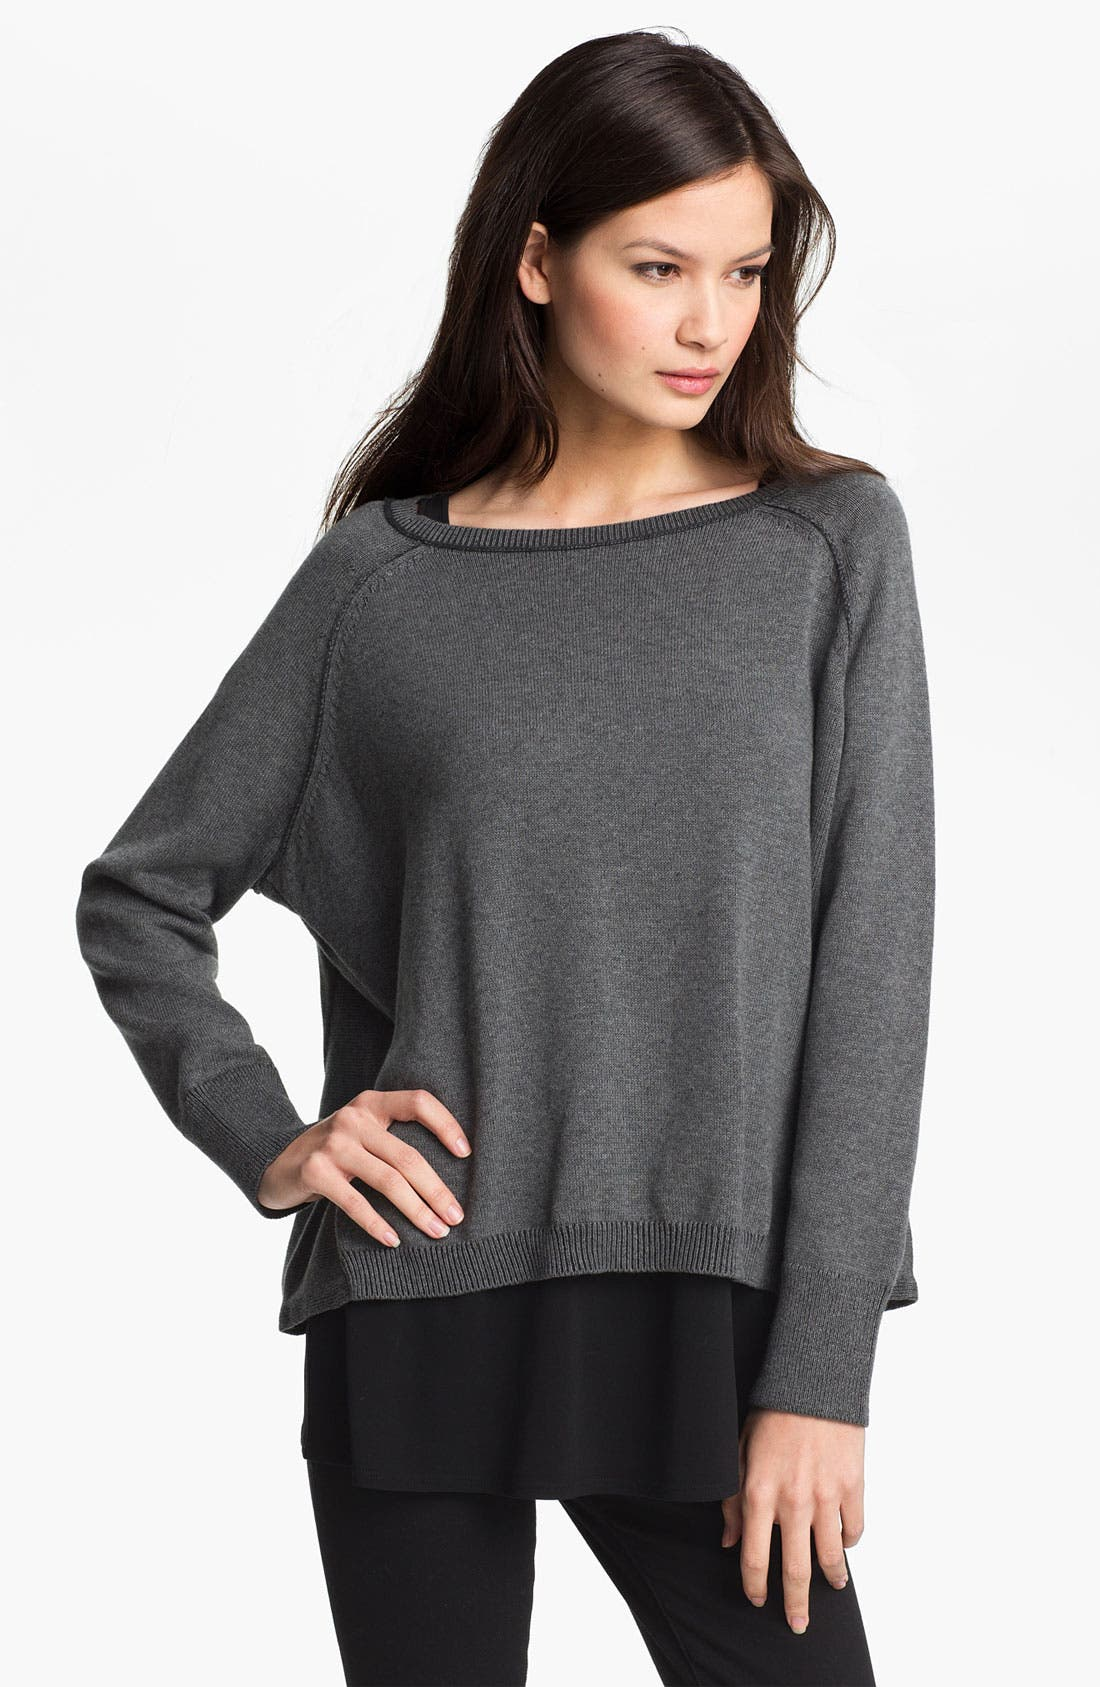 Alternate Image 1 Selected - Eileen Fisher Boxy Organic Cotton Top (Online Exclusive)